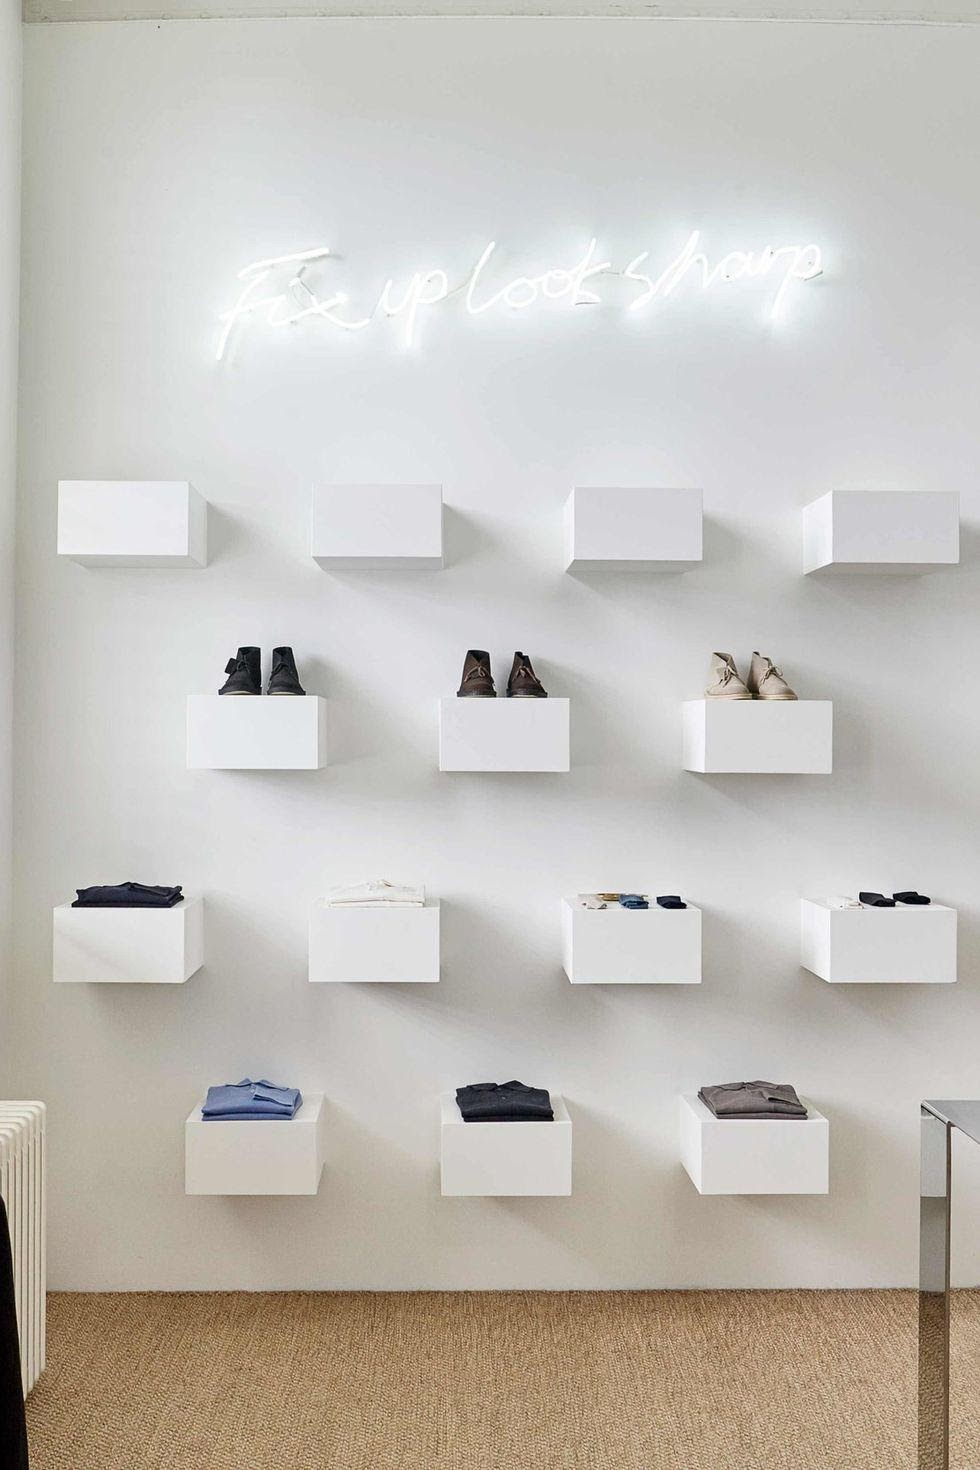 12. Create a Floating Cubby Wall Instead of a Classic Shelving Unit by simphome.com